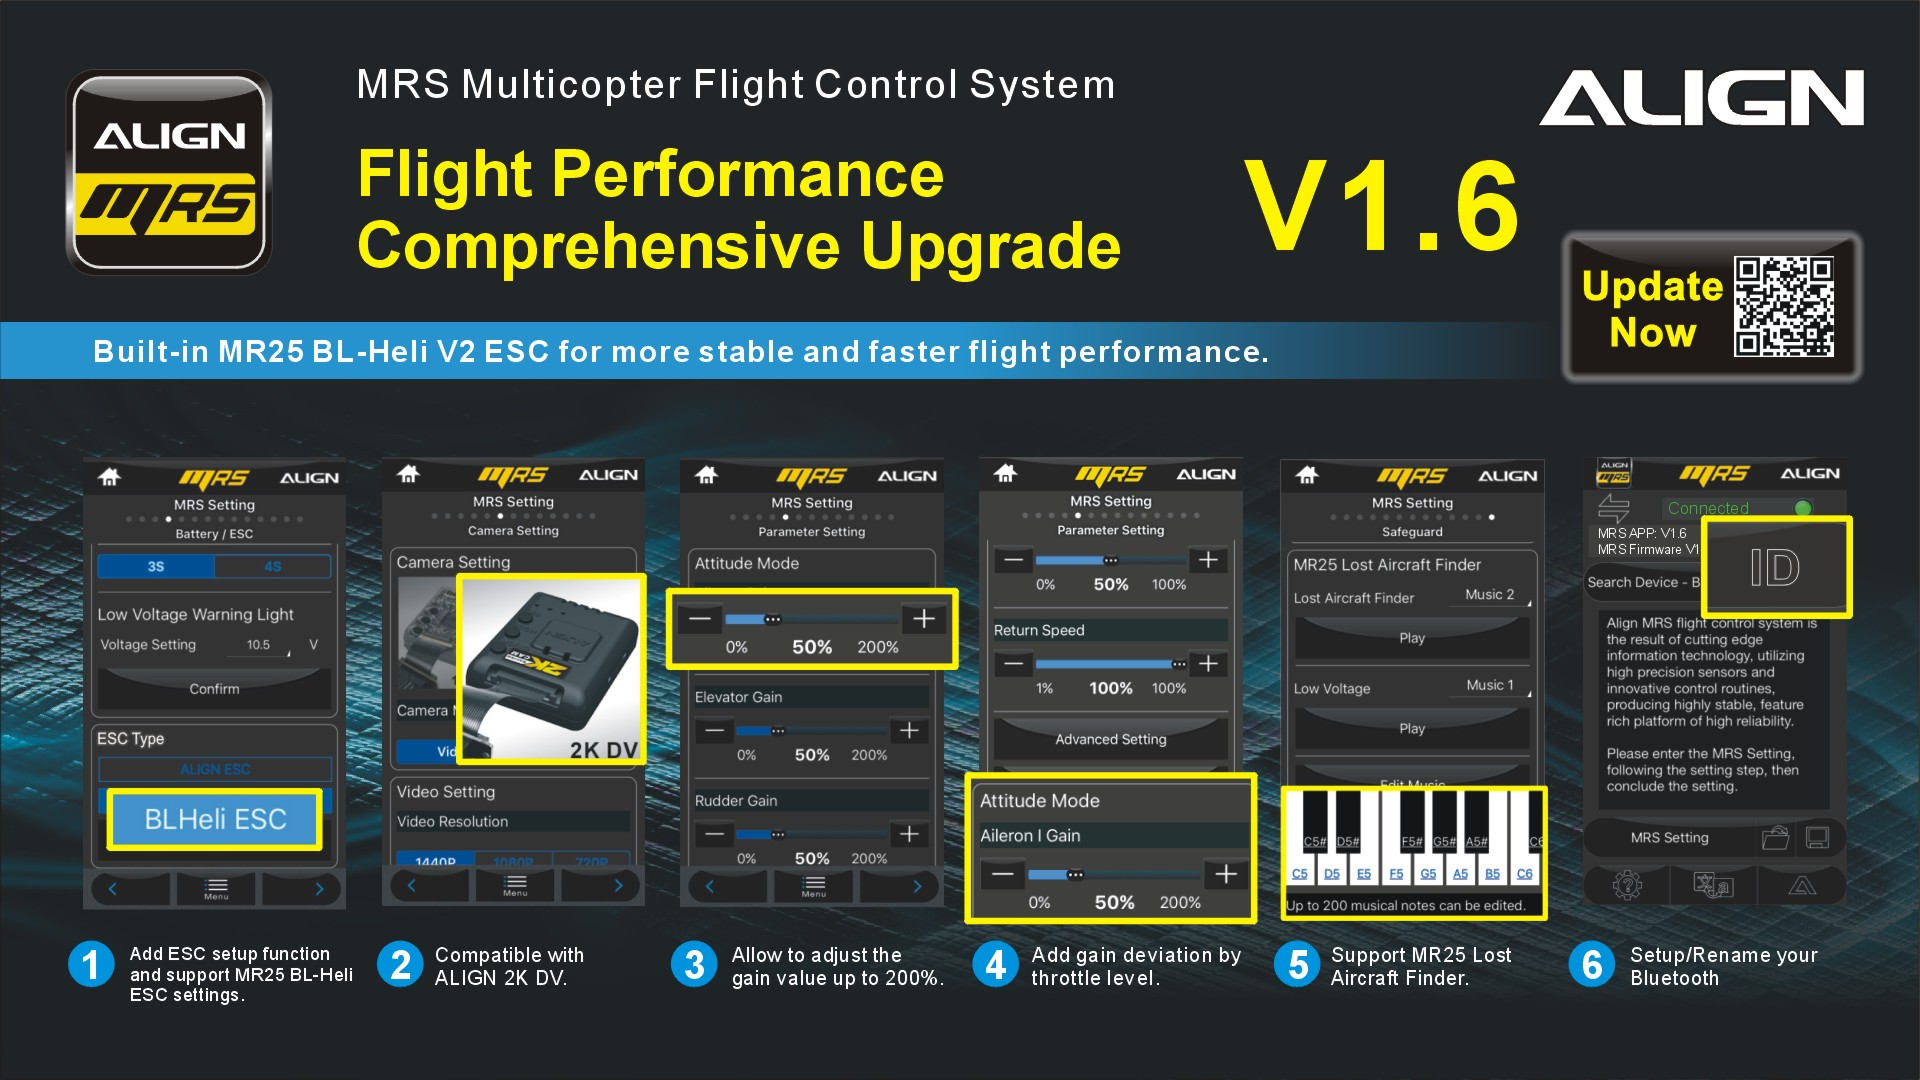 Whole New MR25 V1 6 Firmware Update App     For Free - ALIGN